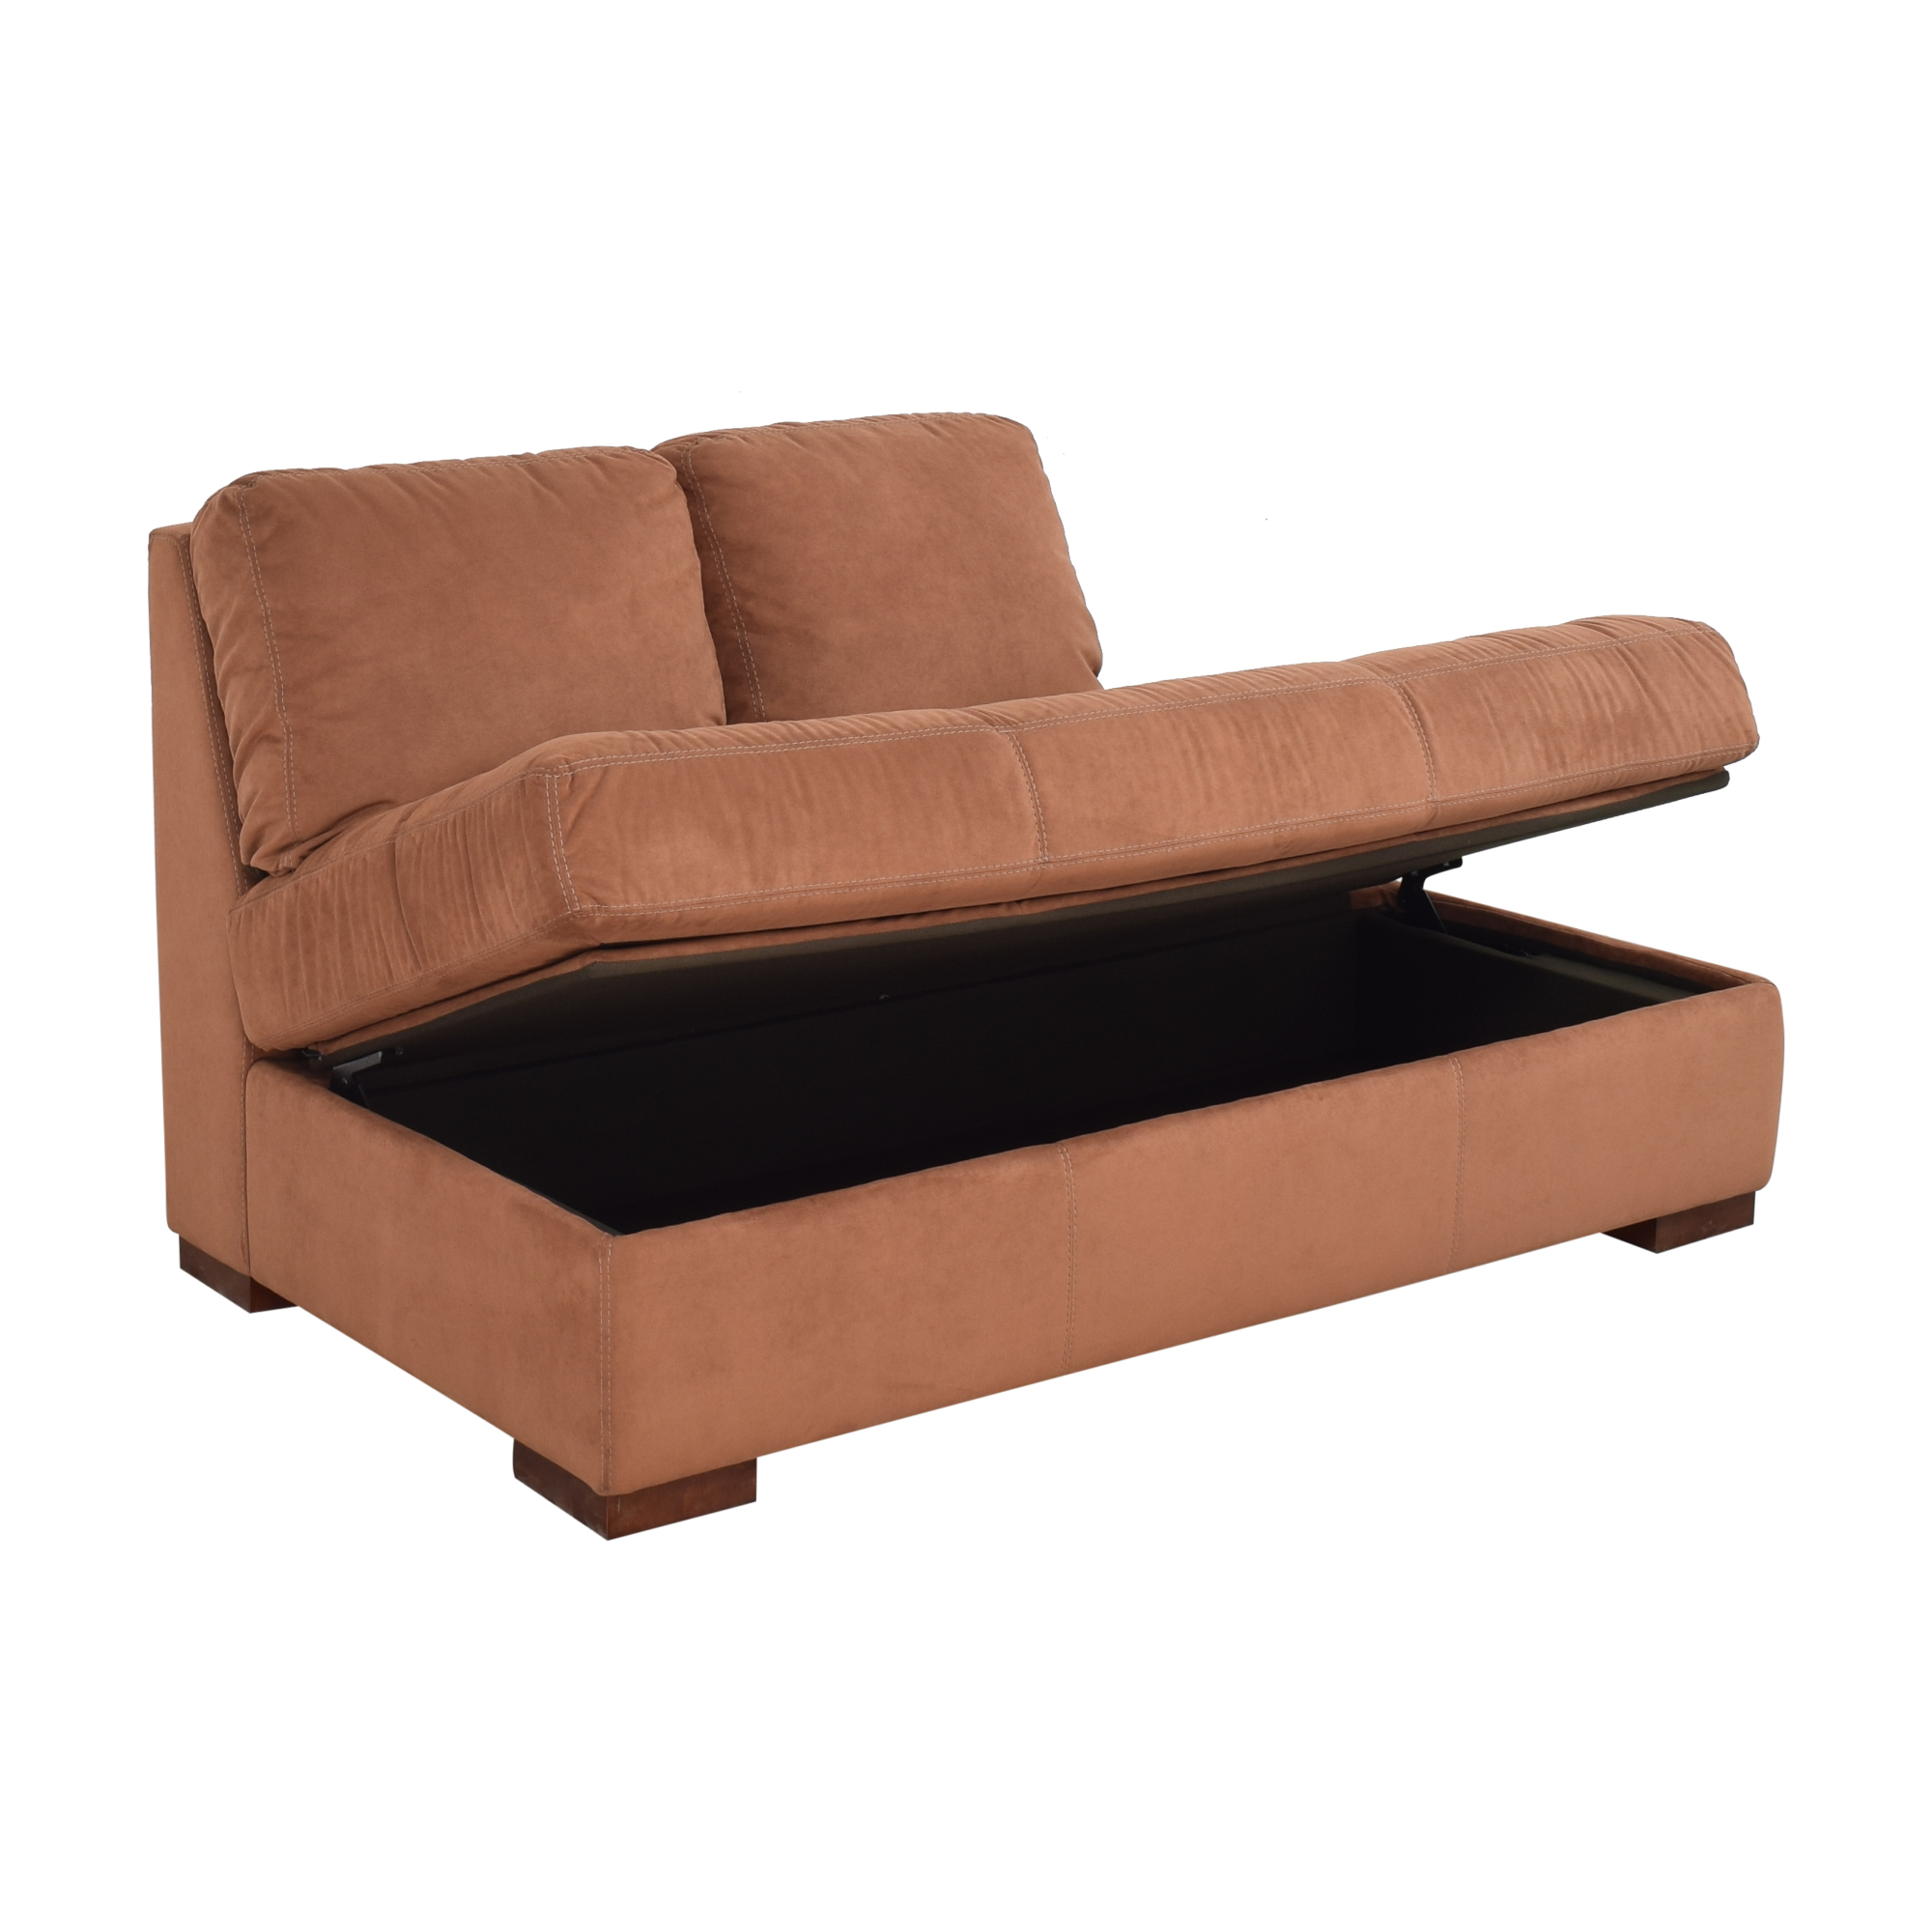 American Leather American Leather Tufted Storage Chaise ct